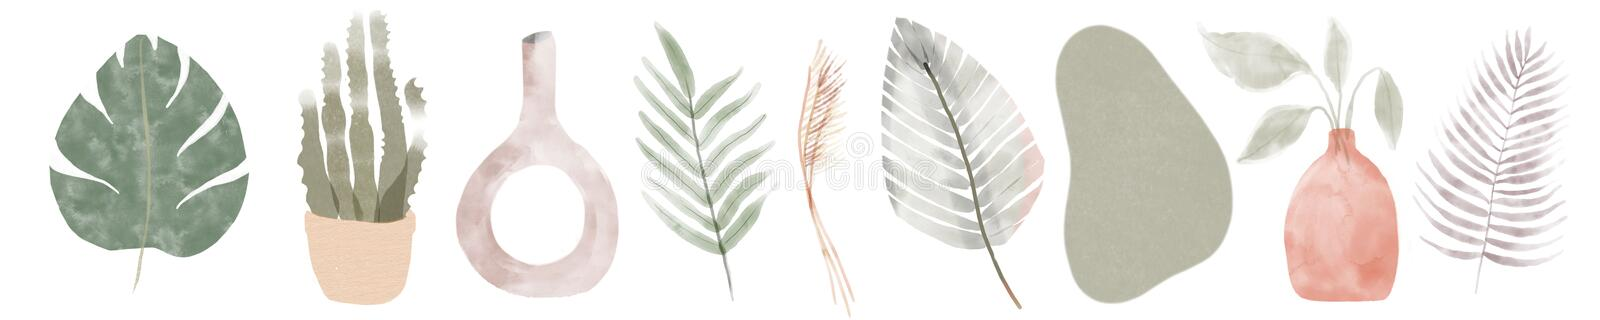 Background Earth Tones Stock Illustrations 842 Background Earth Tones Stock Illustrations Vectors Clipart Dreamstime